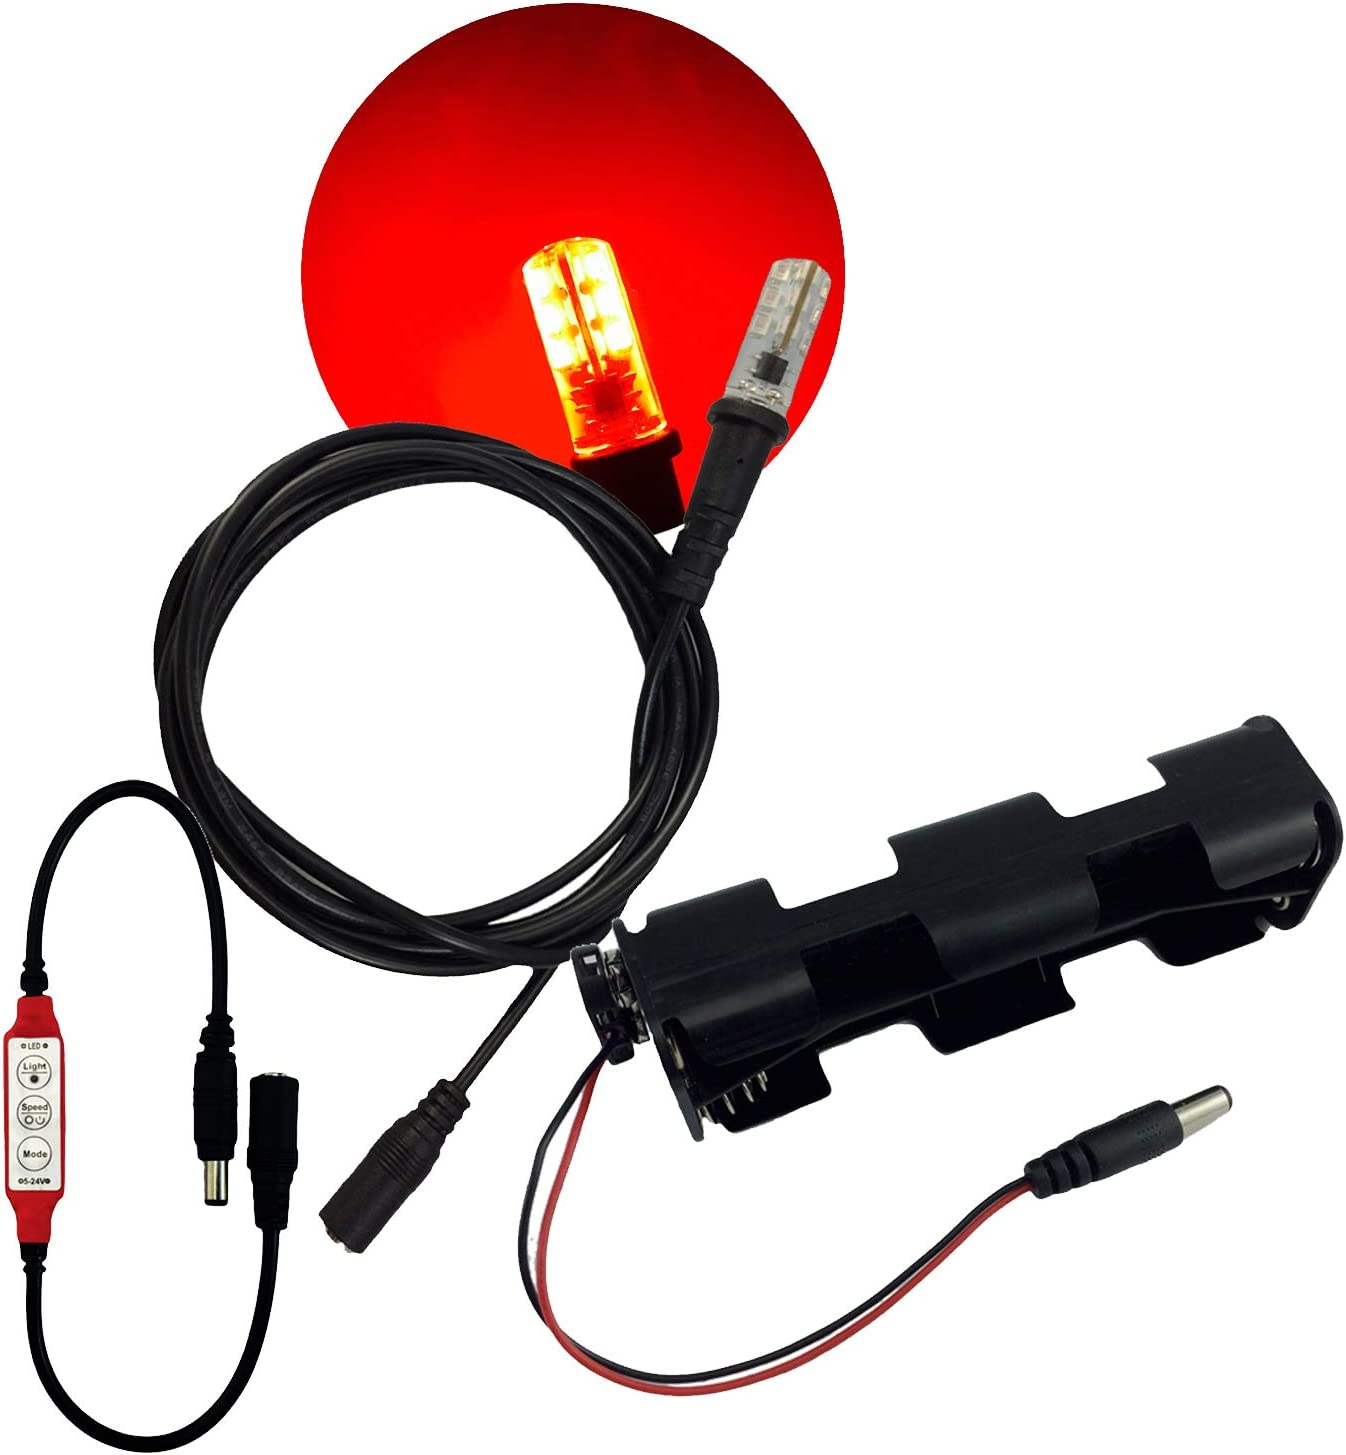 Red led light kit with effects flicker Don't miss the campaign glowing for flame Phoenix Mall control